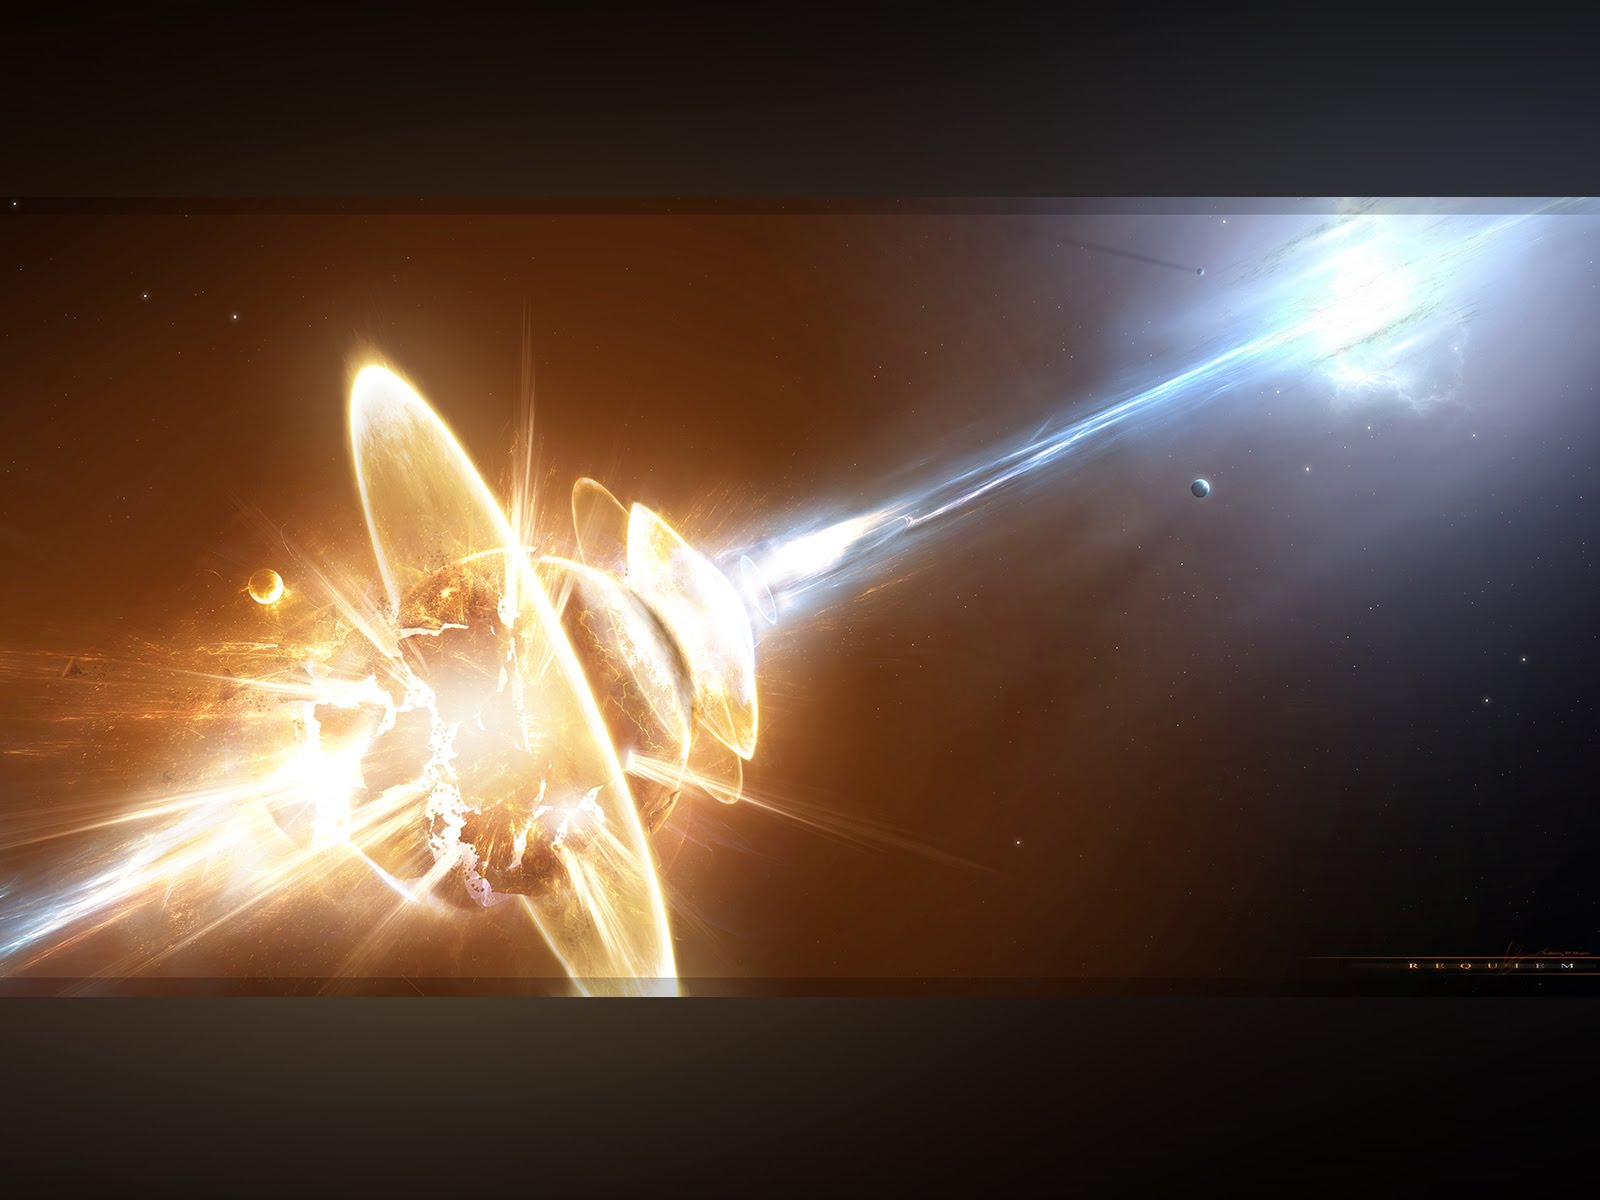 3D Space Wallpapers Free Download